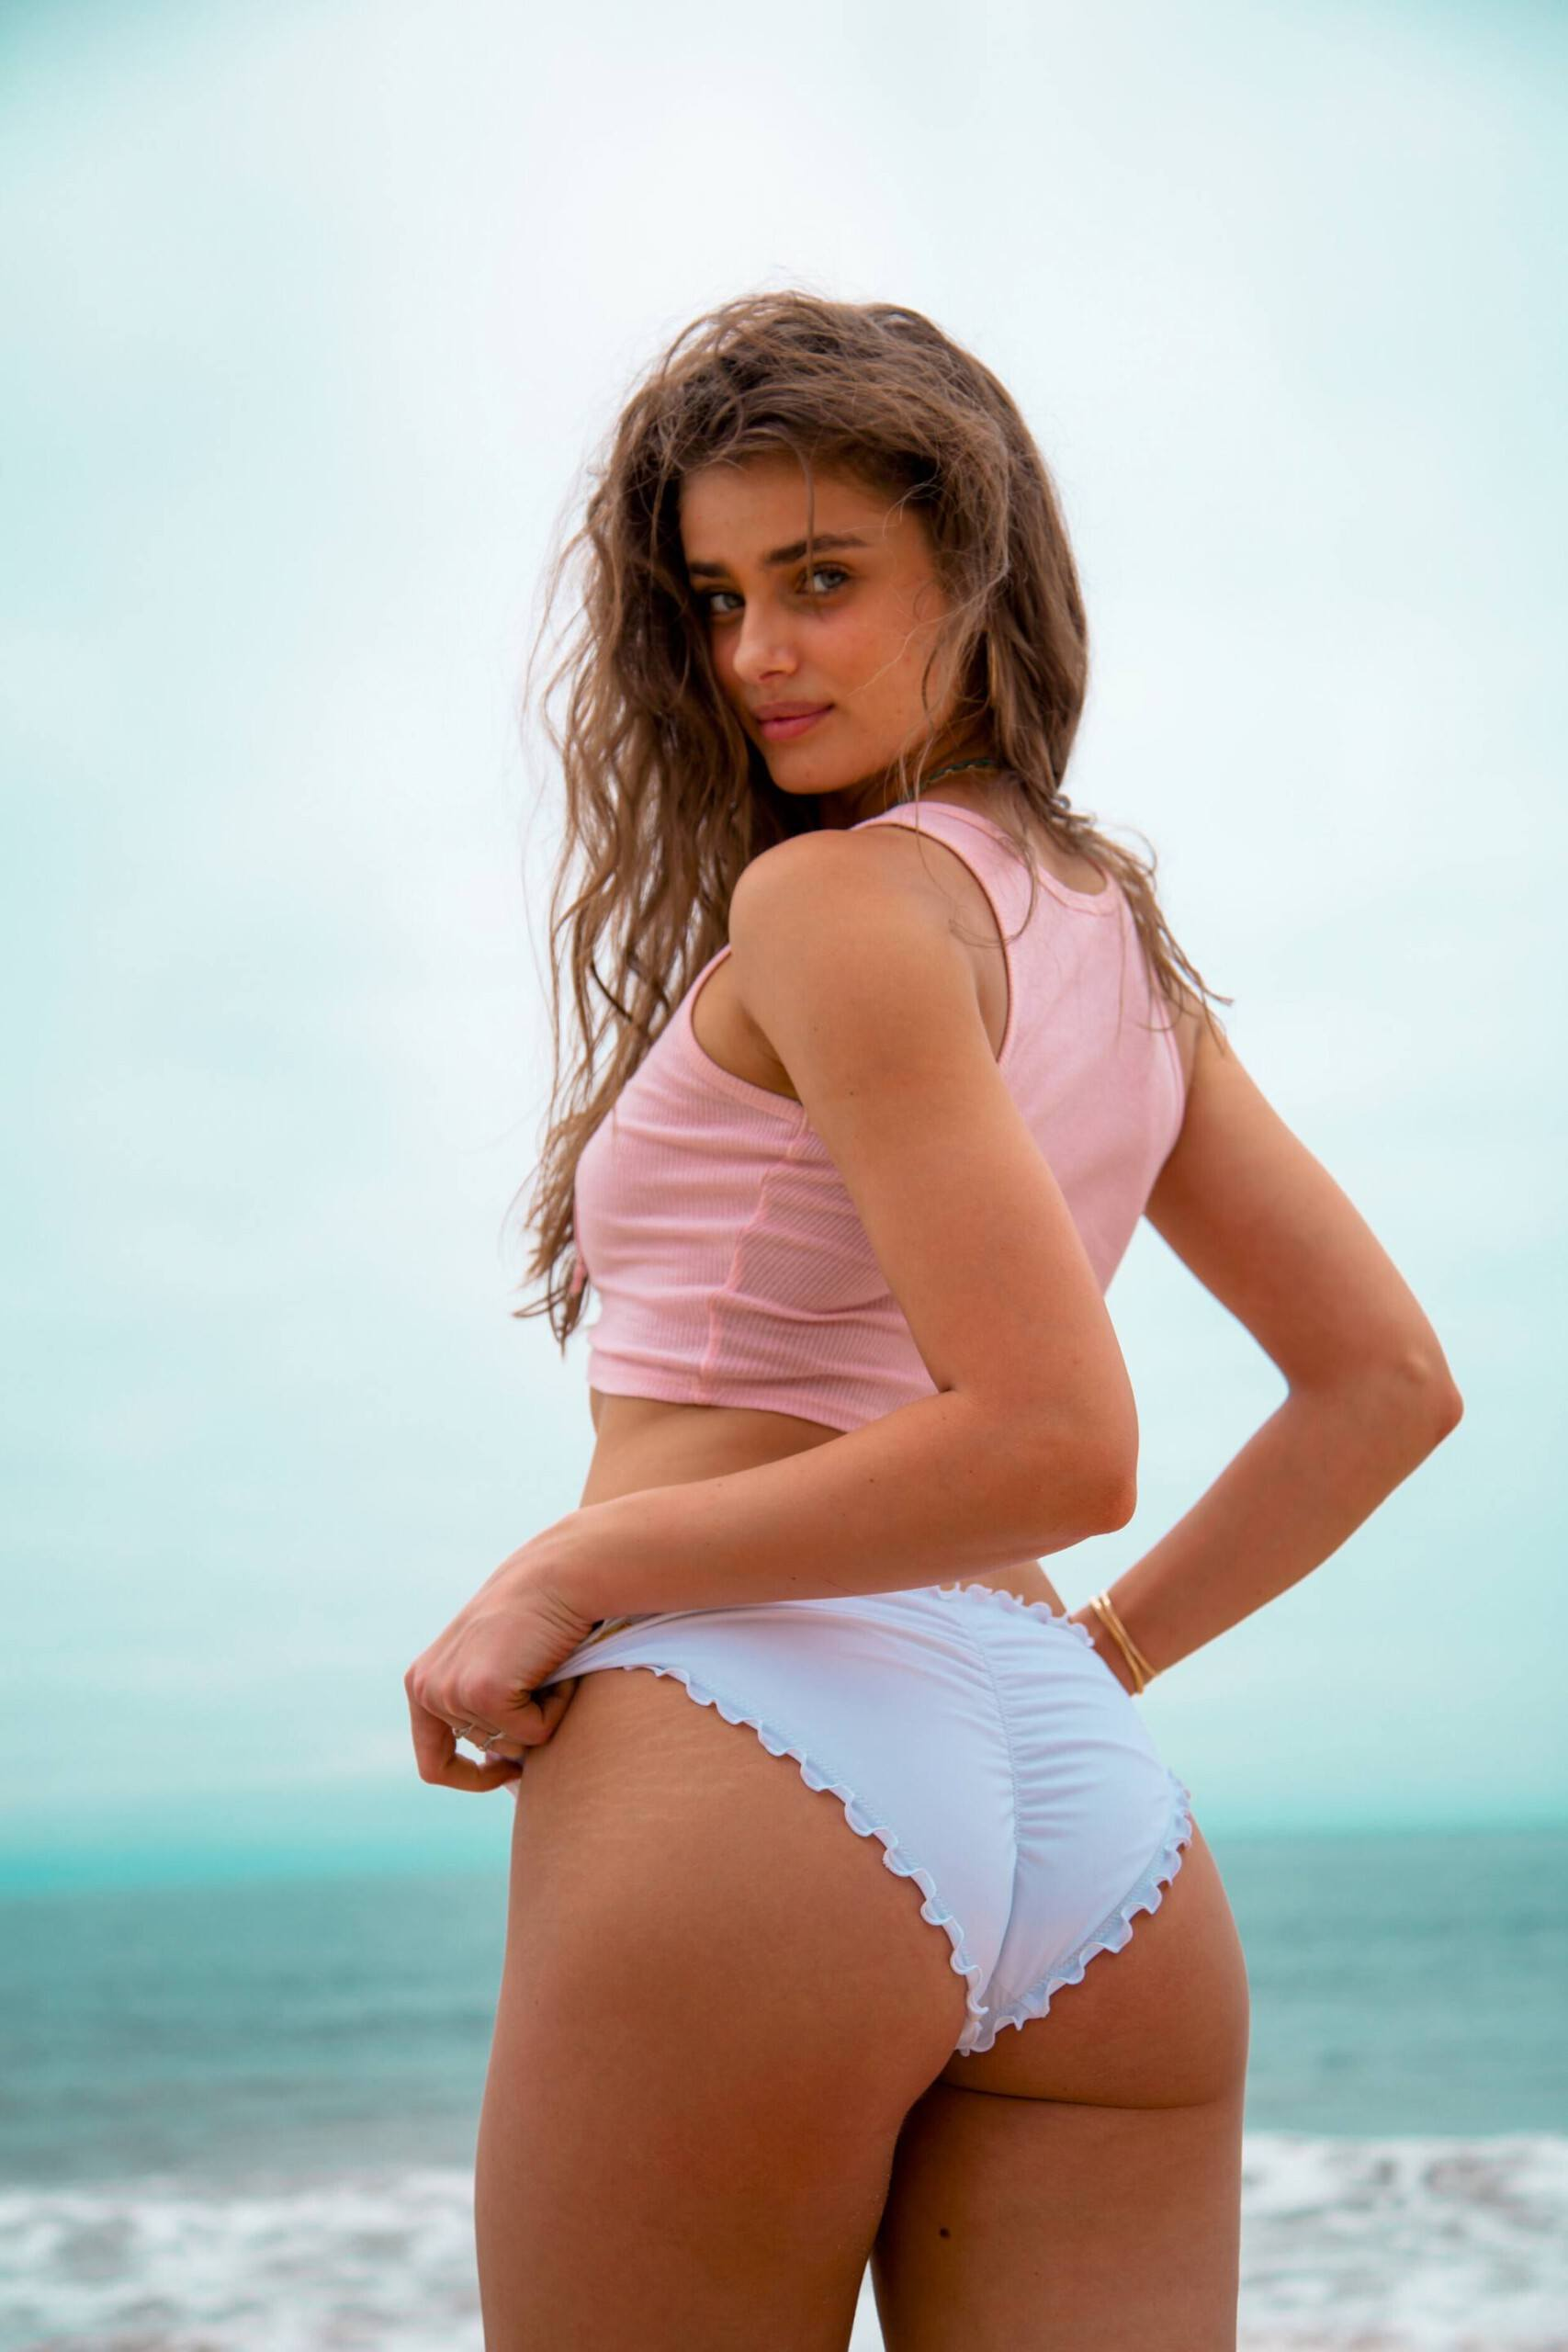 Taylor Hill Ass in Bikini Photoshoot by Logan Rae Hill